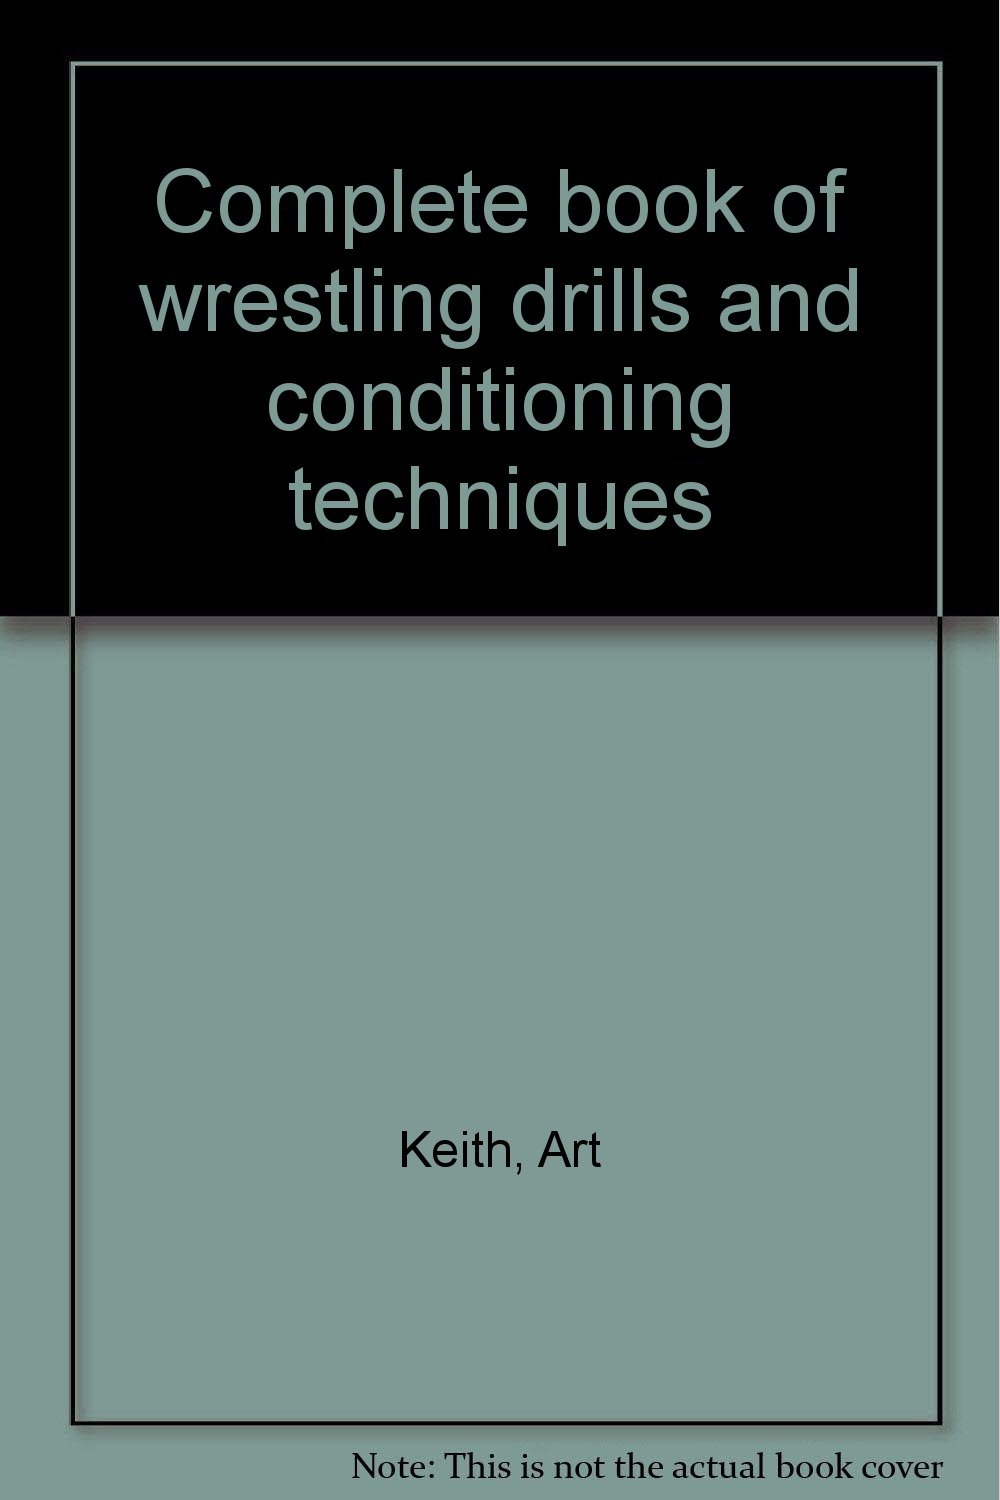 Complete book of wrestling drills and conditioning